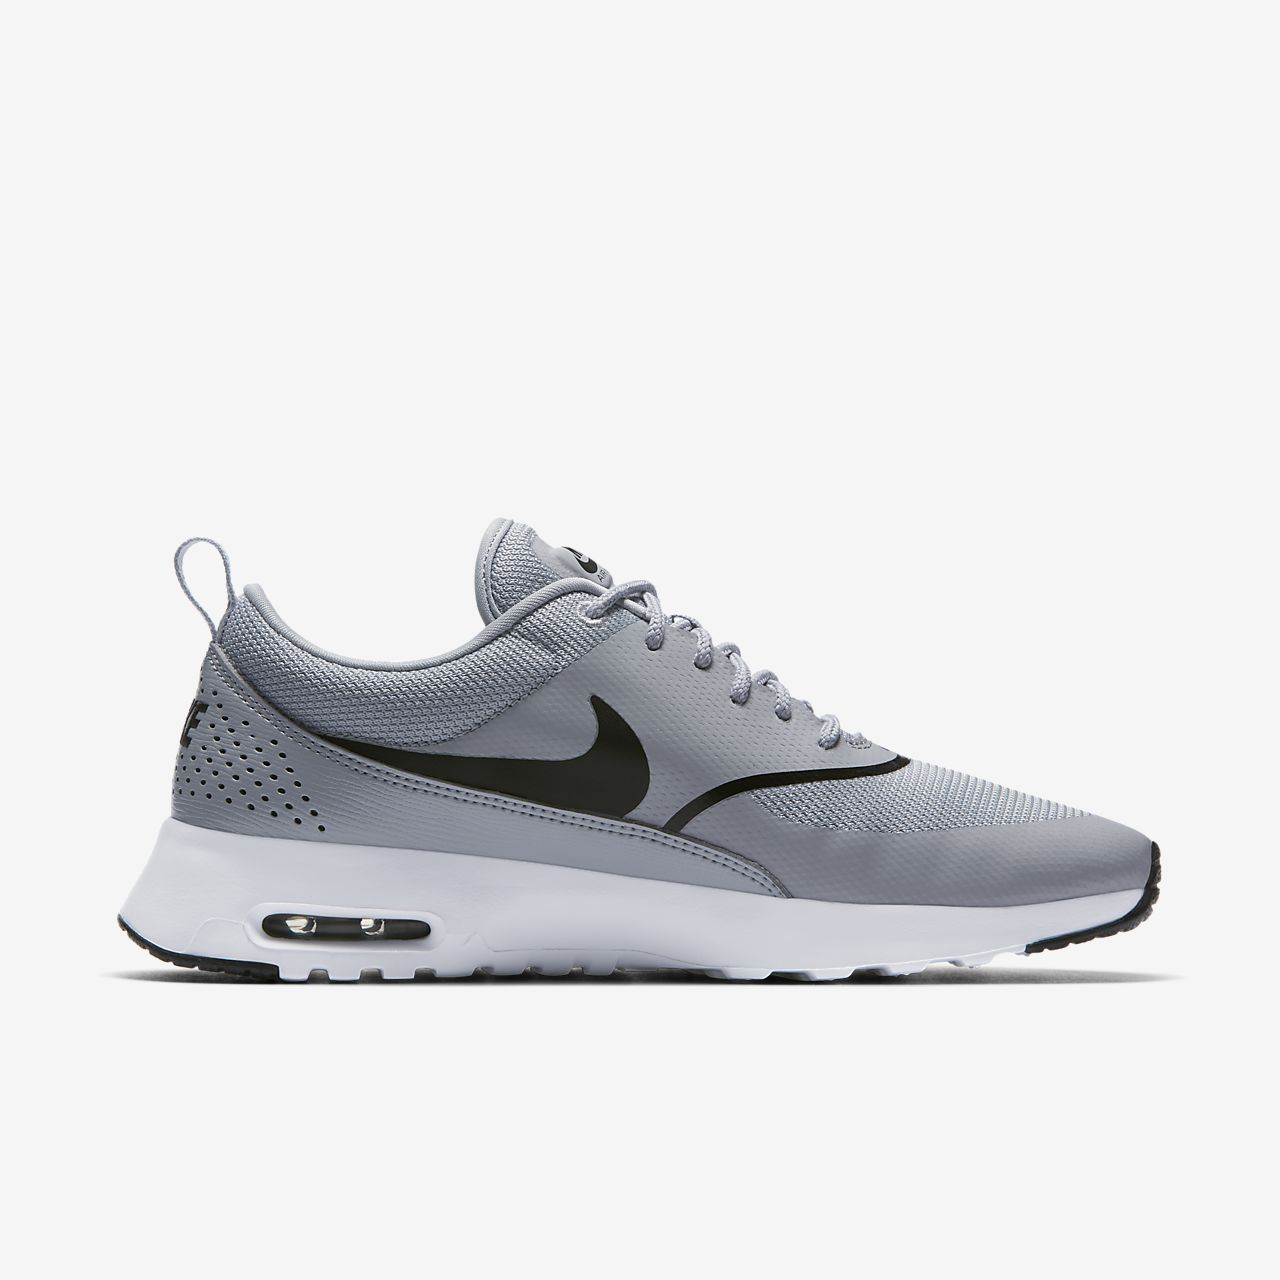 reputable site 8fd57 dc6bc ... Nike Air Max Thea Women s Shoe